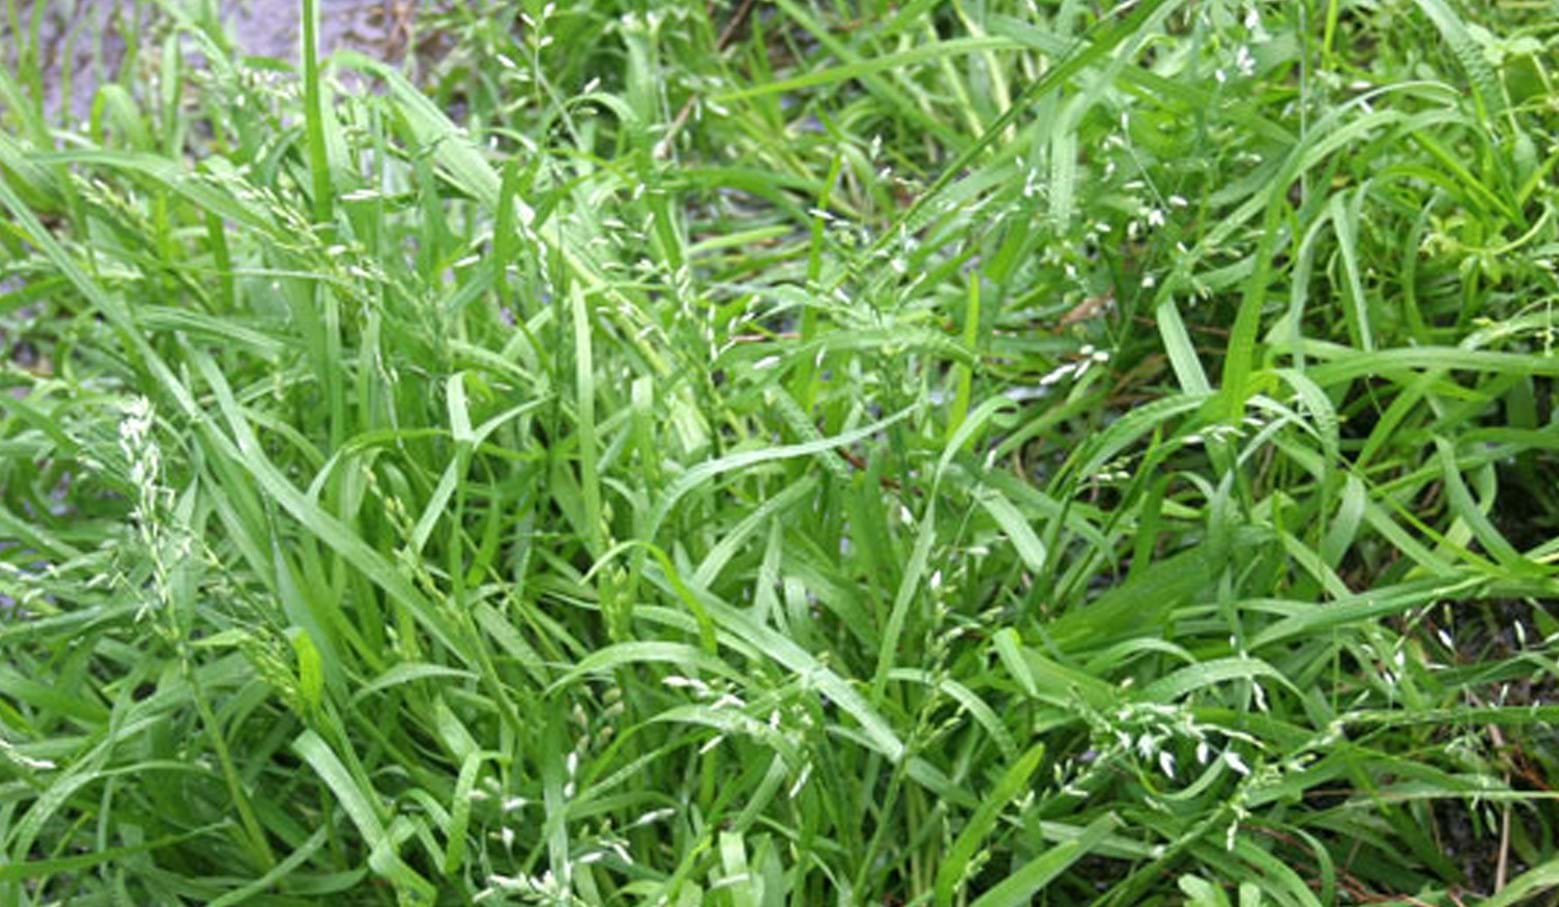 Types of lawn grass weeds - Lawn Weed Winter Grass Winter Grass